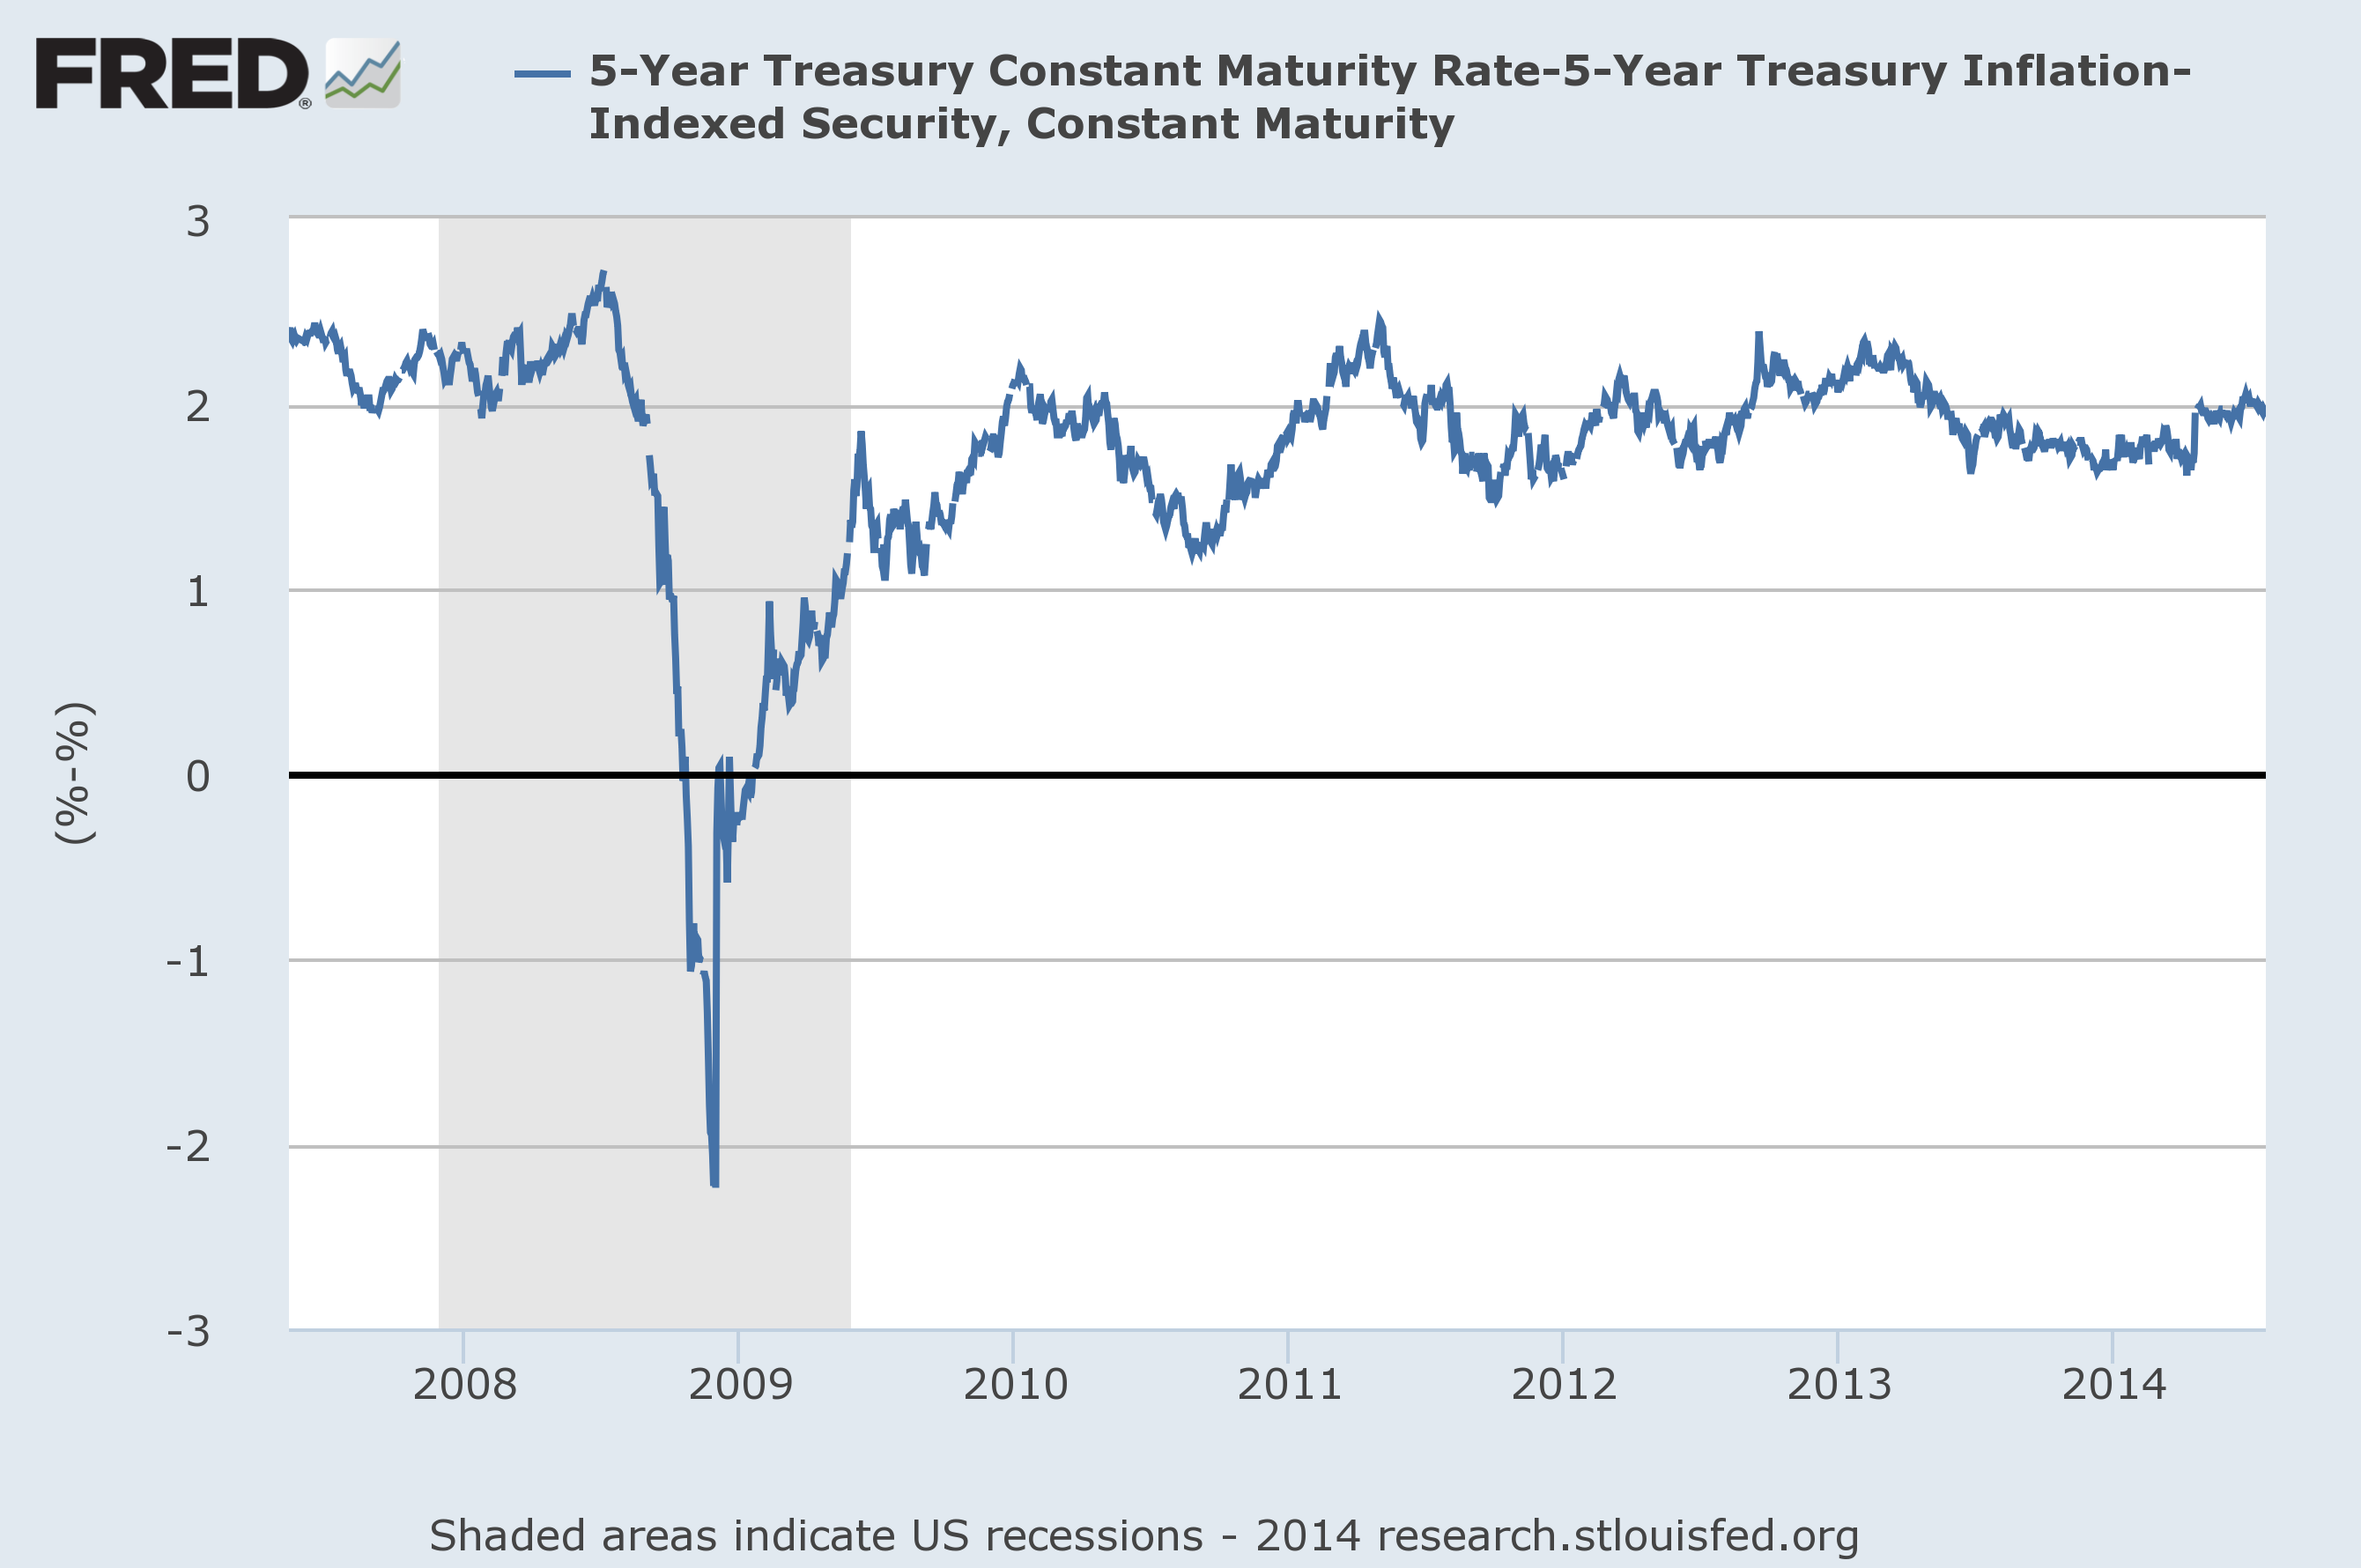 5-Year Treasury Yield minus 5-Year Inflation Indexed (TIPS) Yield